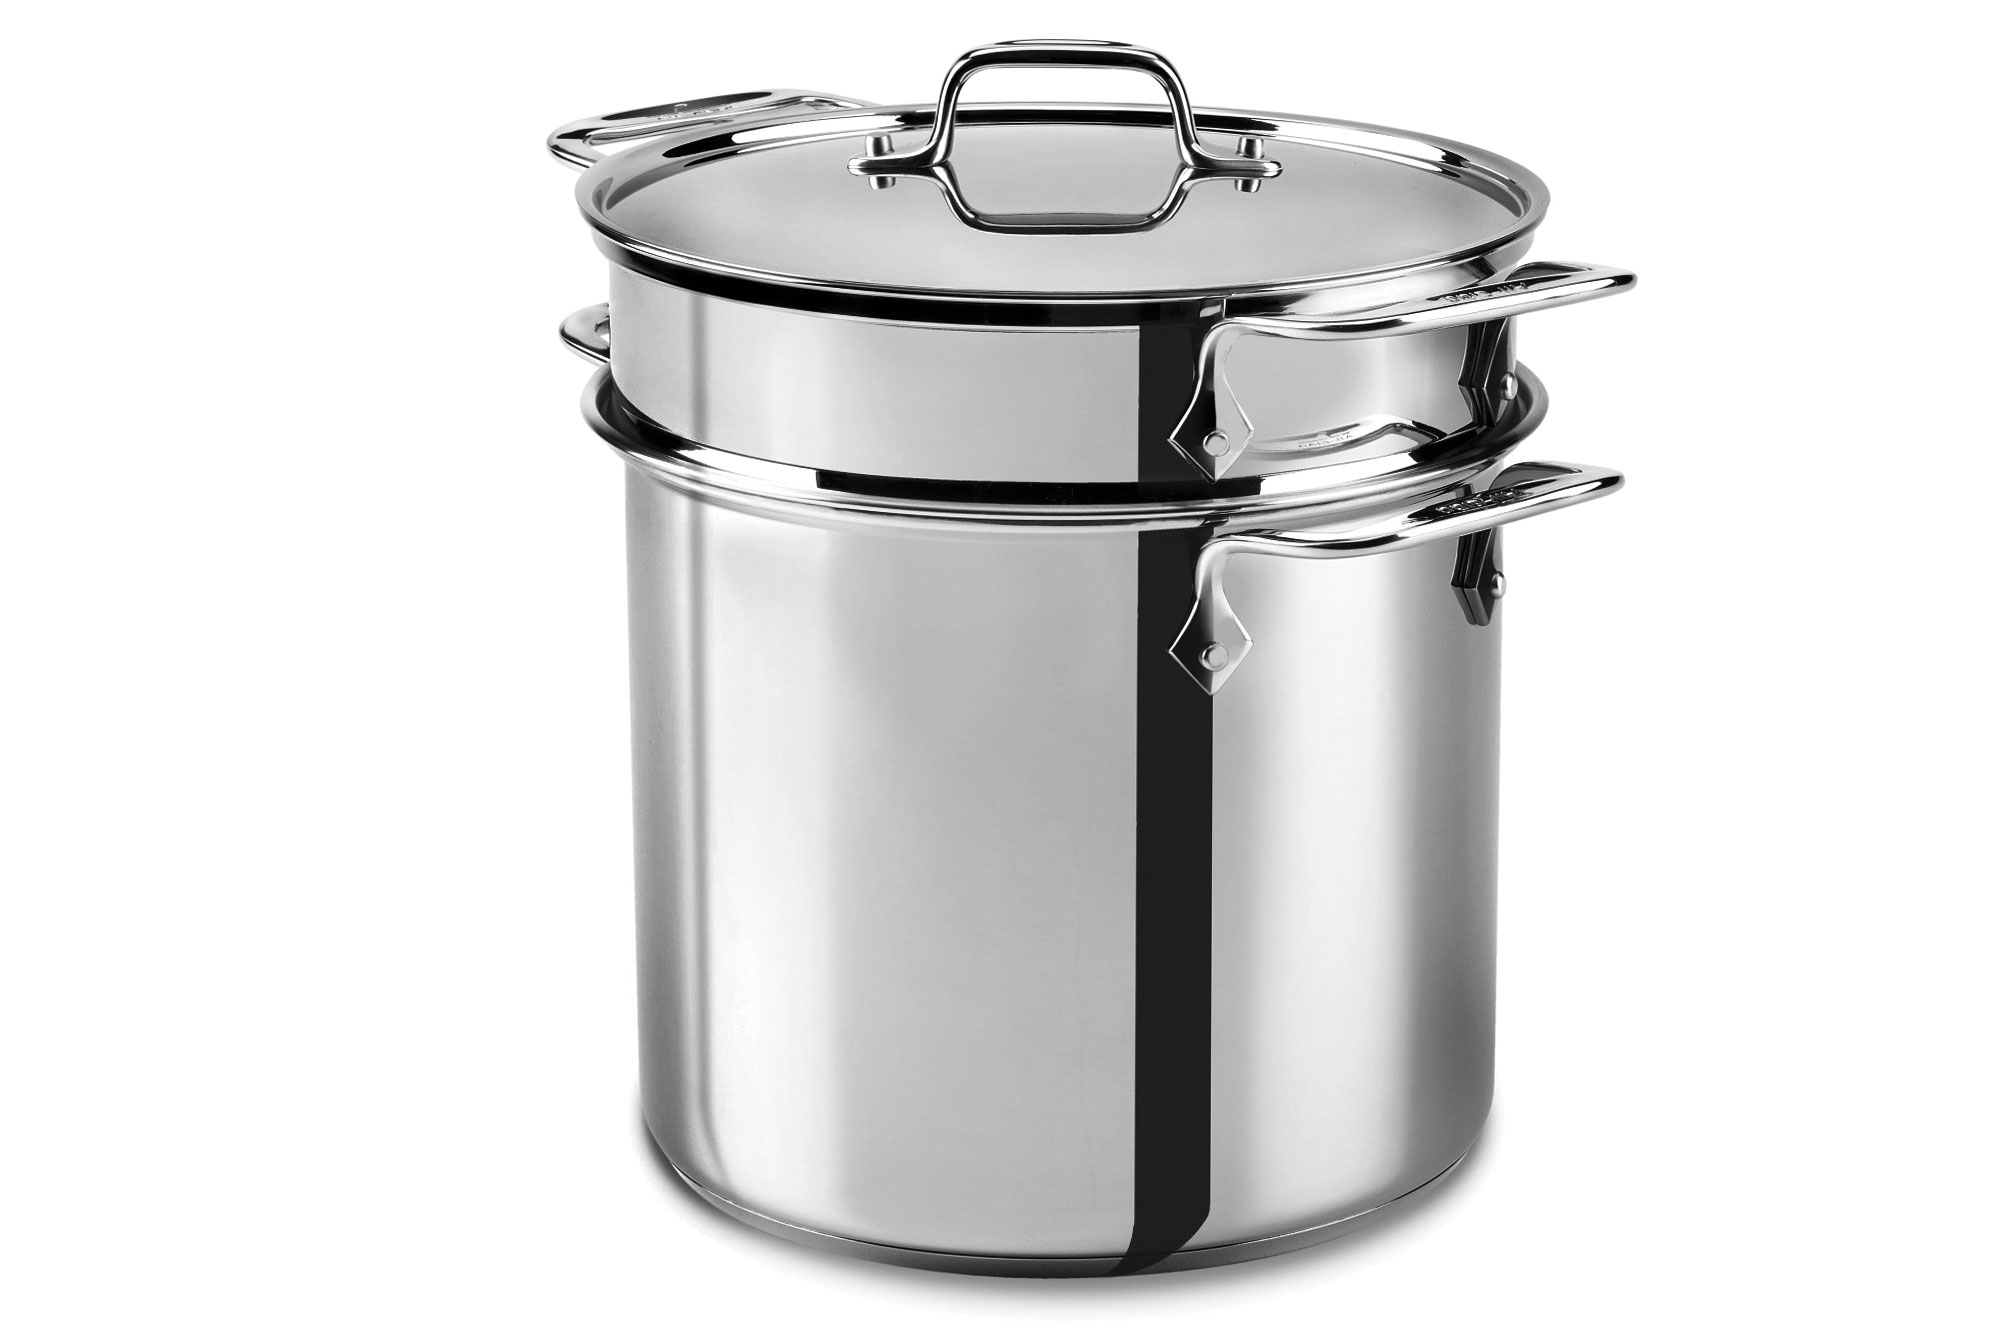 All Clad Stainless Steel Multi Function Stock Pot 8 Quart